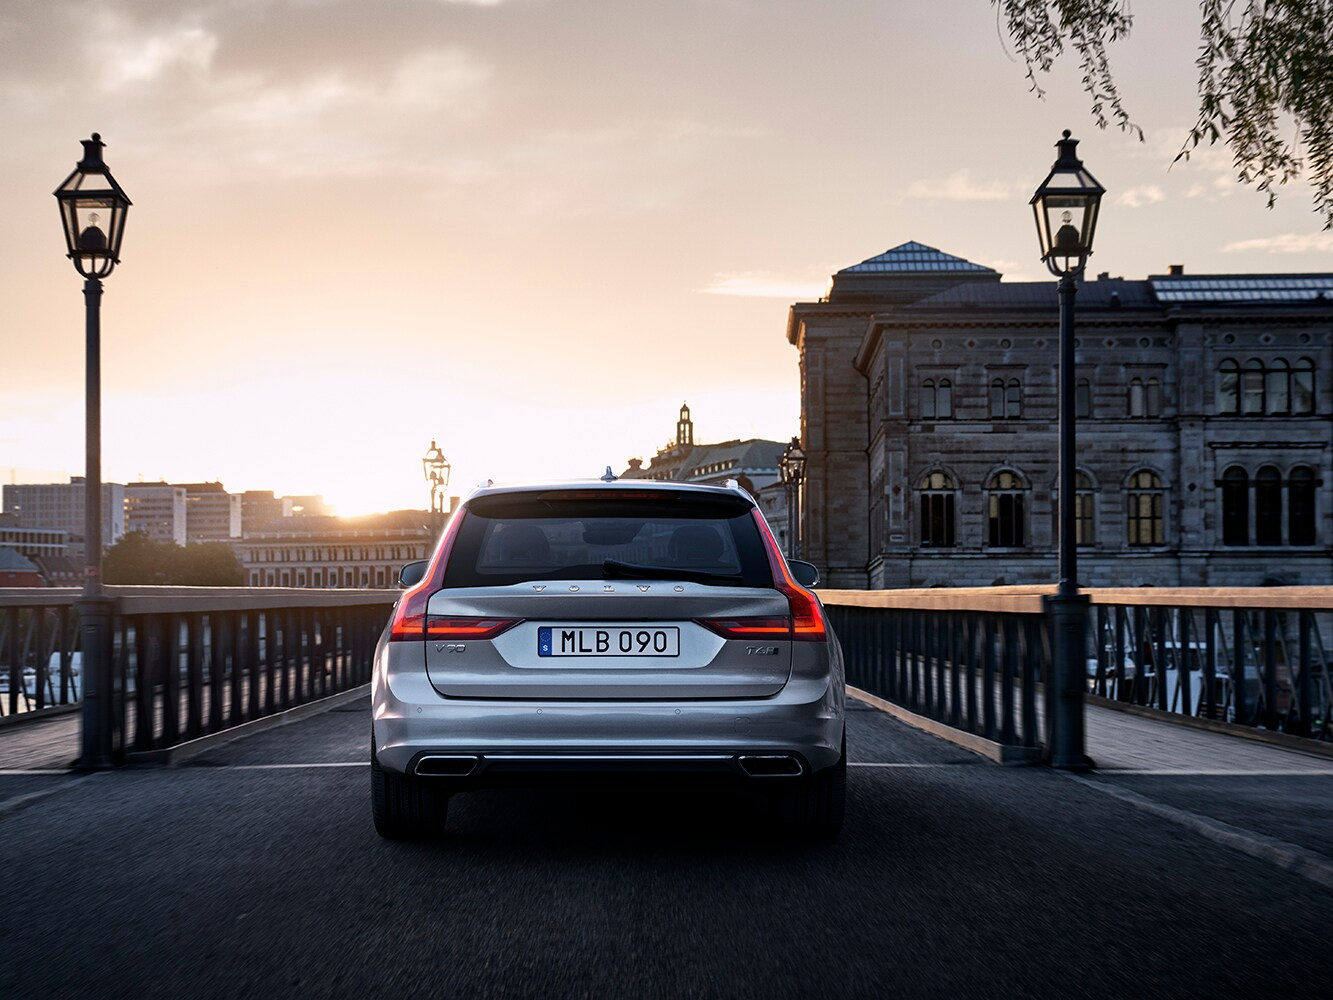 Rear view of Volvo V90 crossing a bridge